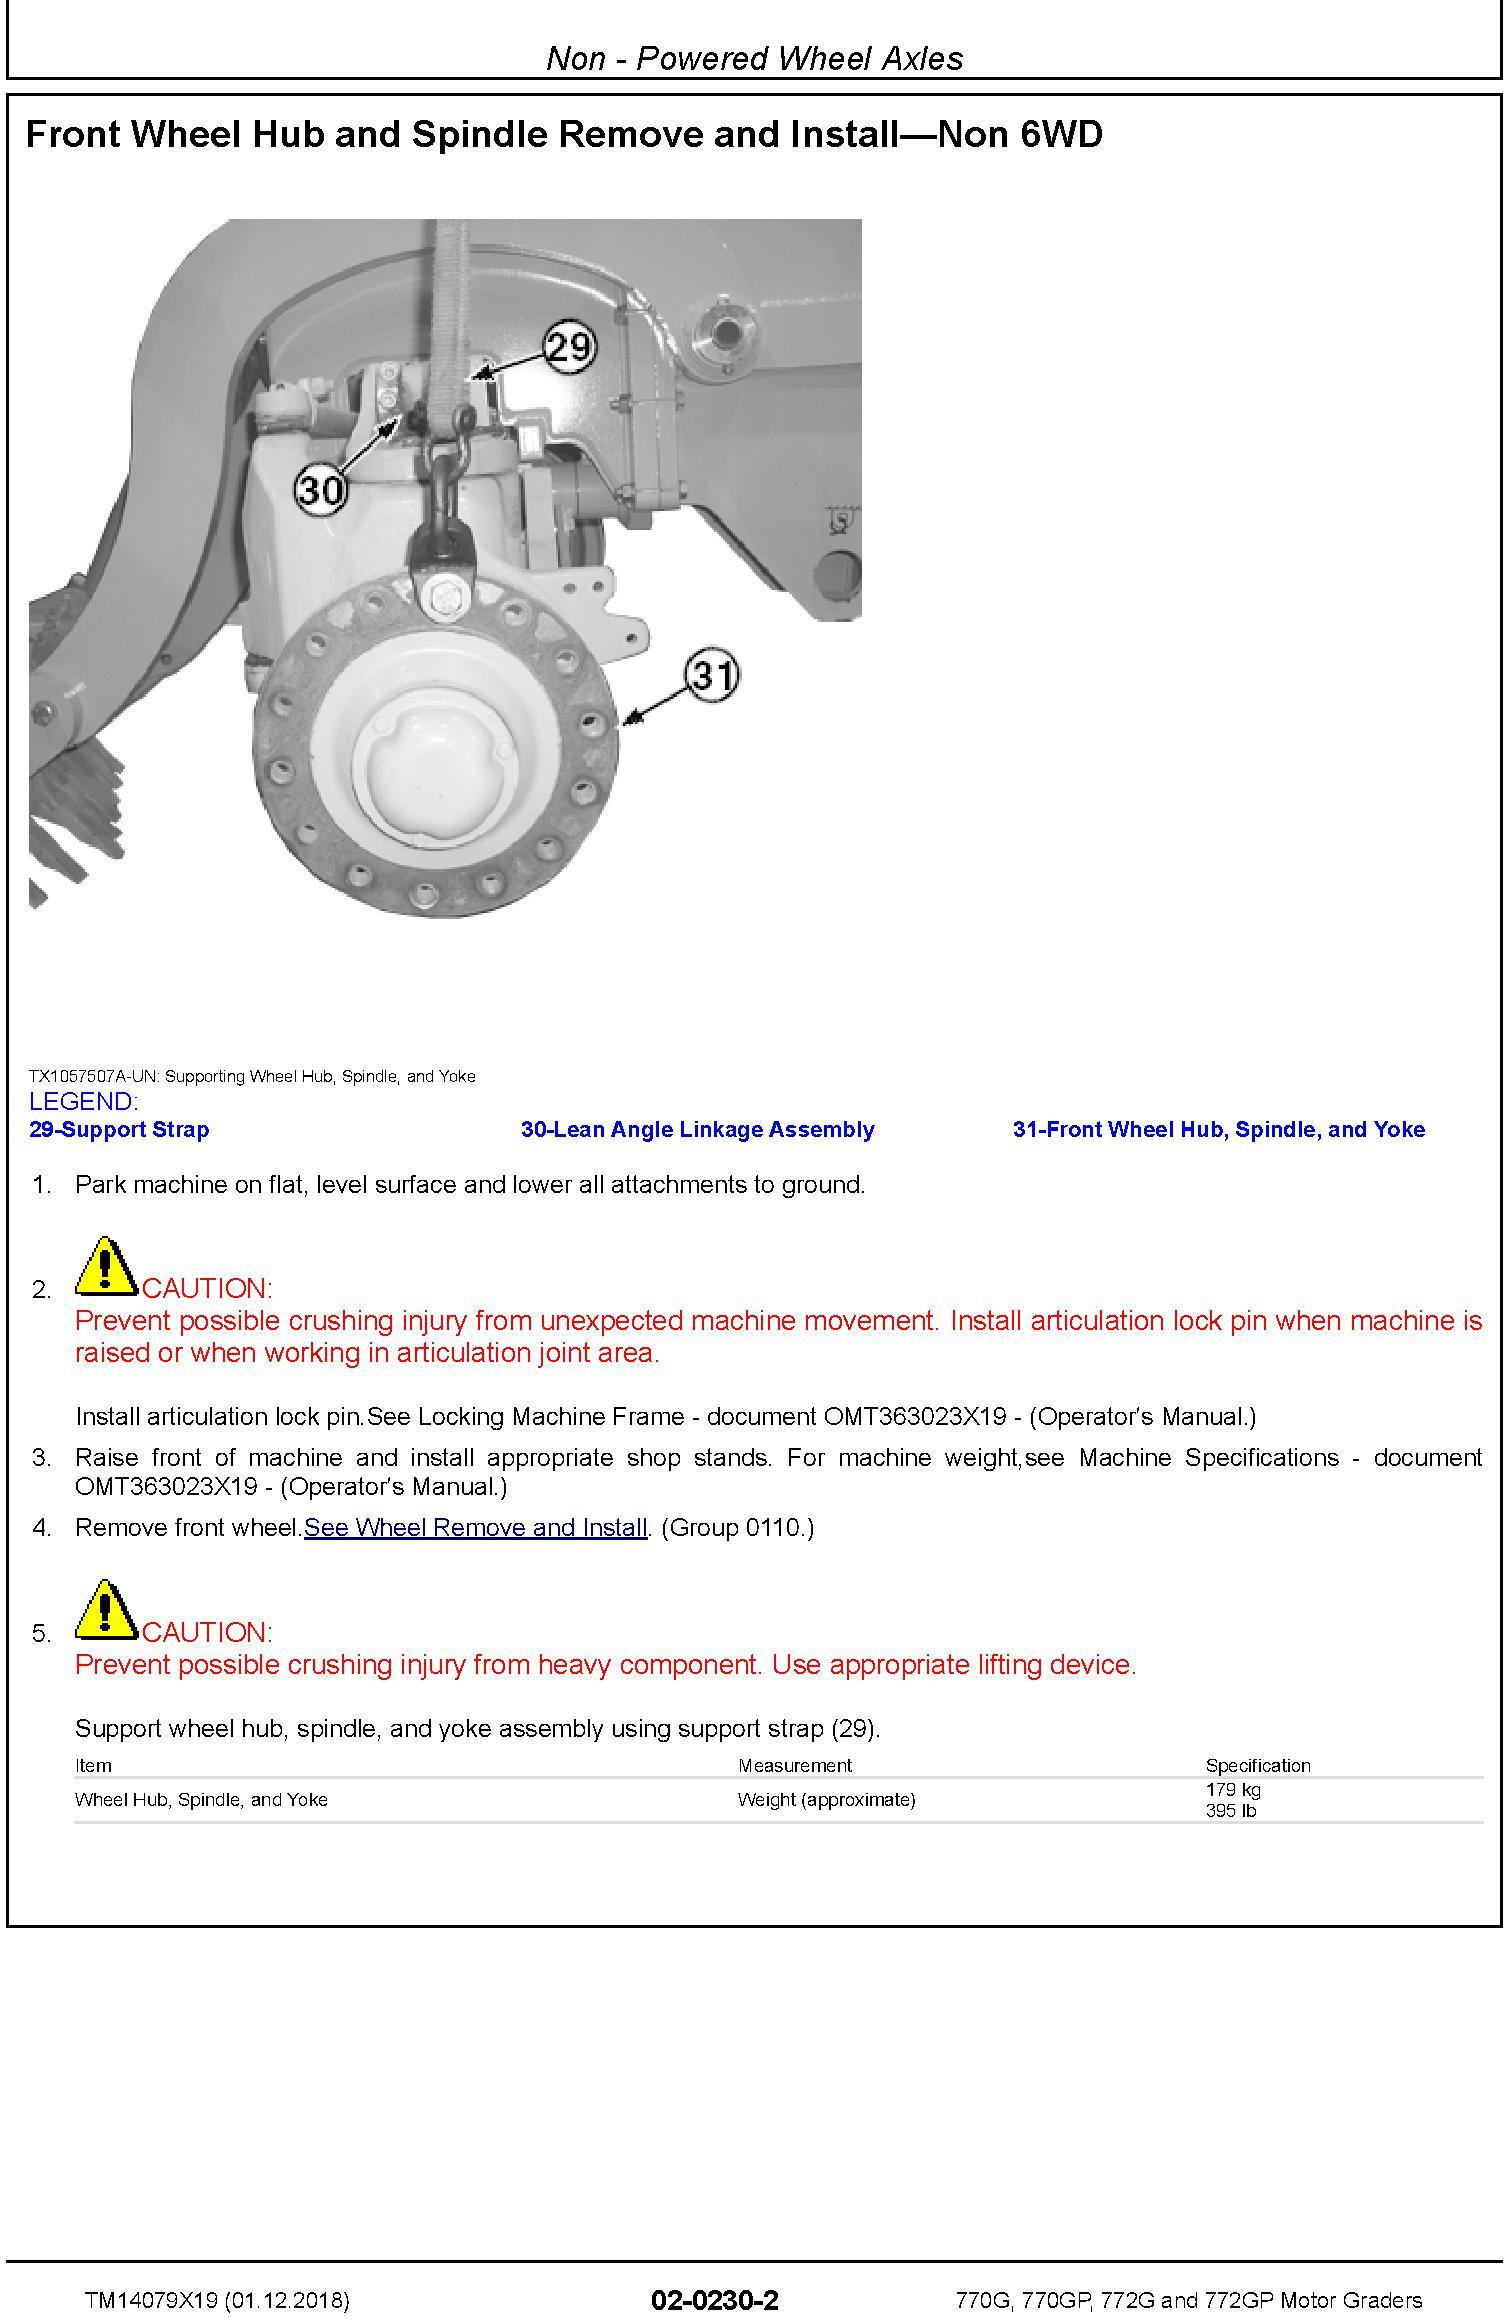 John Deere 770G, 770GP, 772G, 772GP (SN.C678818—680877) Motor Graders Repair Manual (TM14079X19) - 2